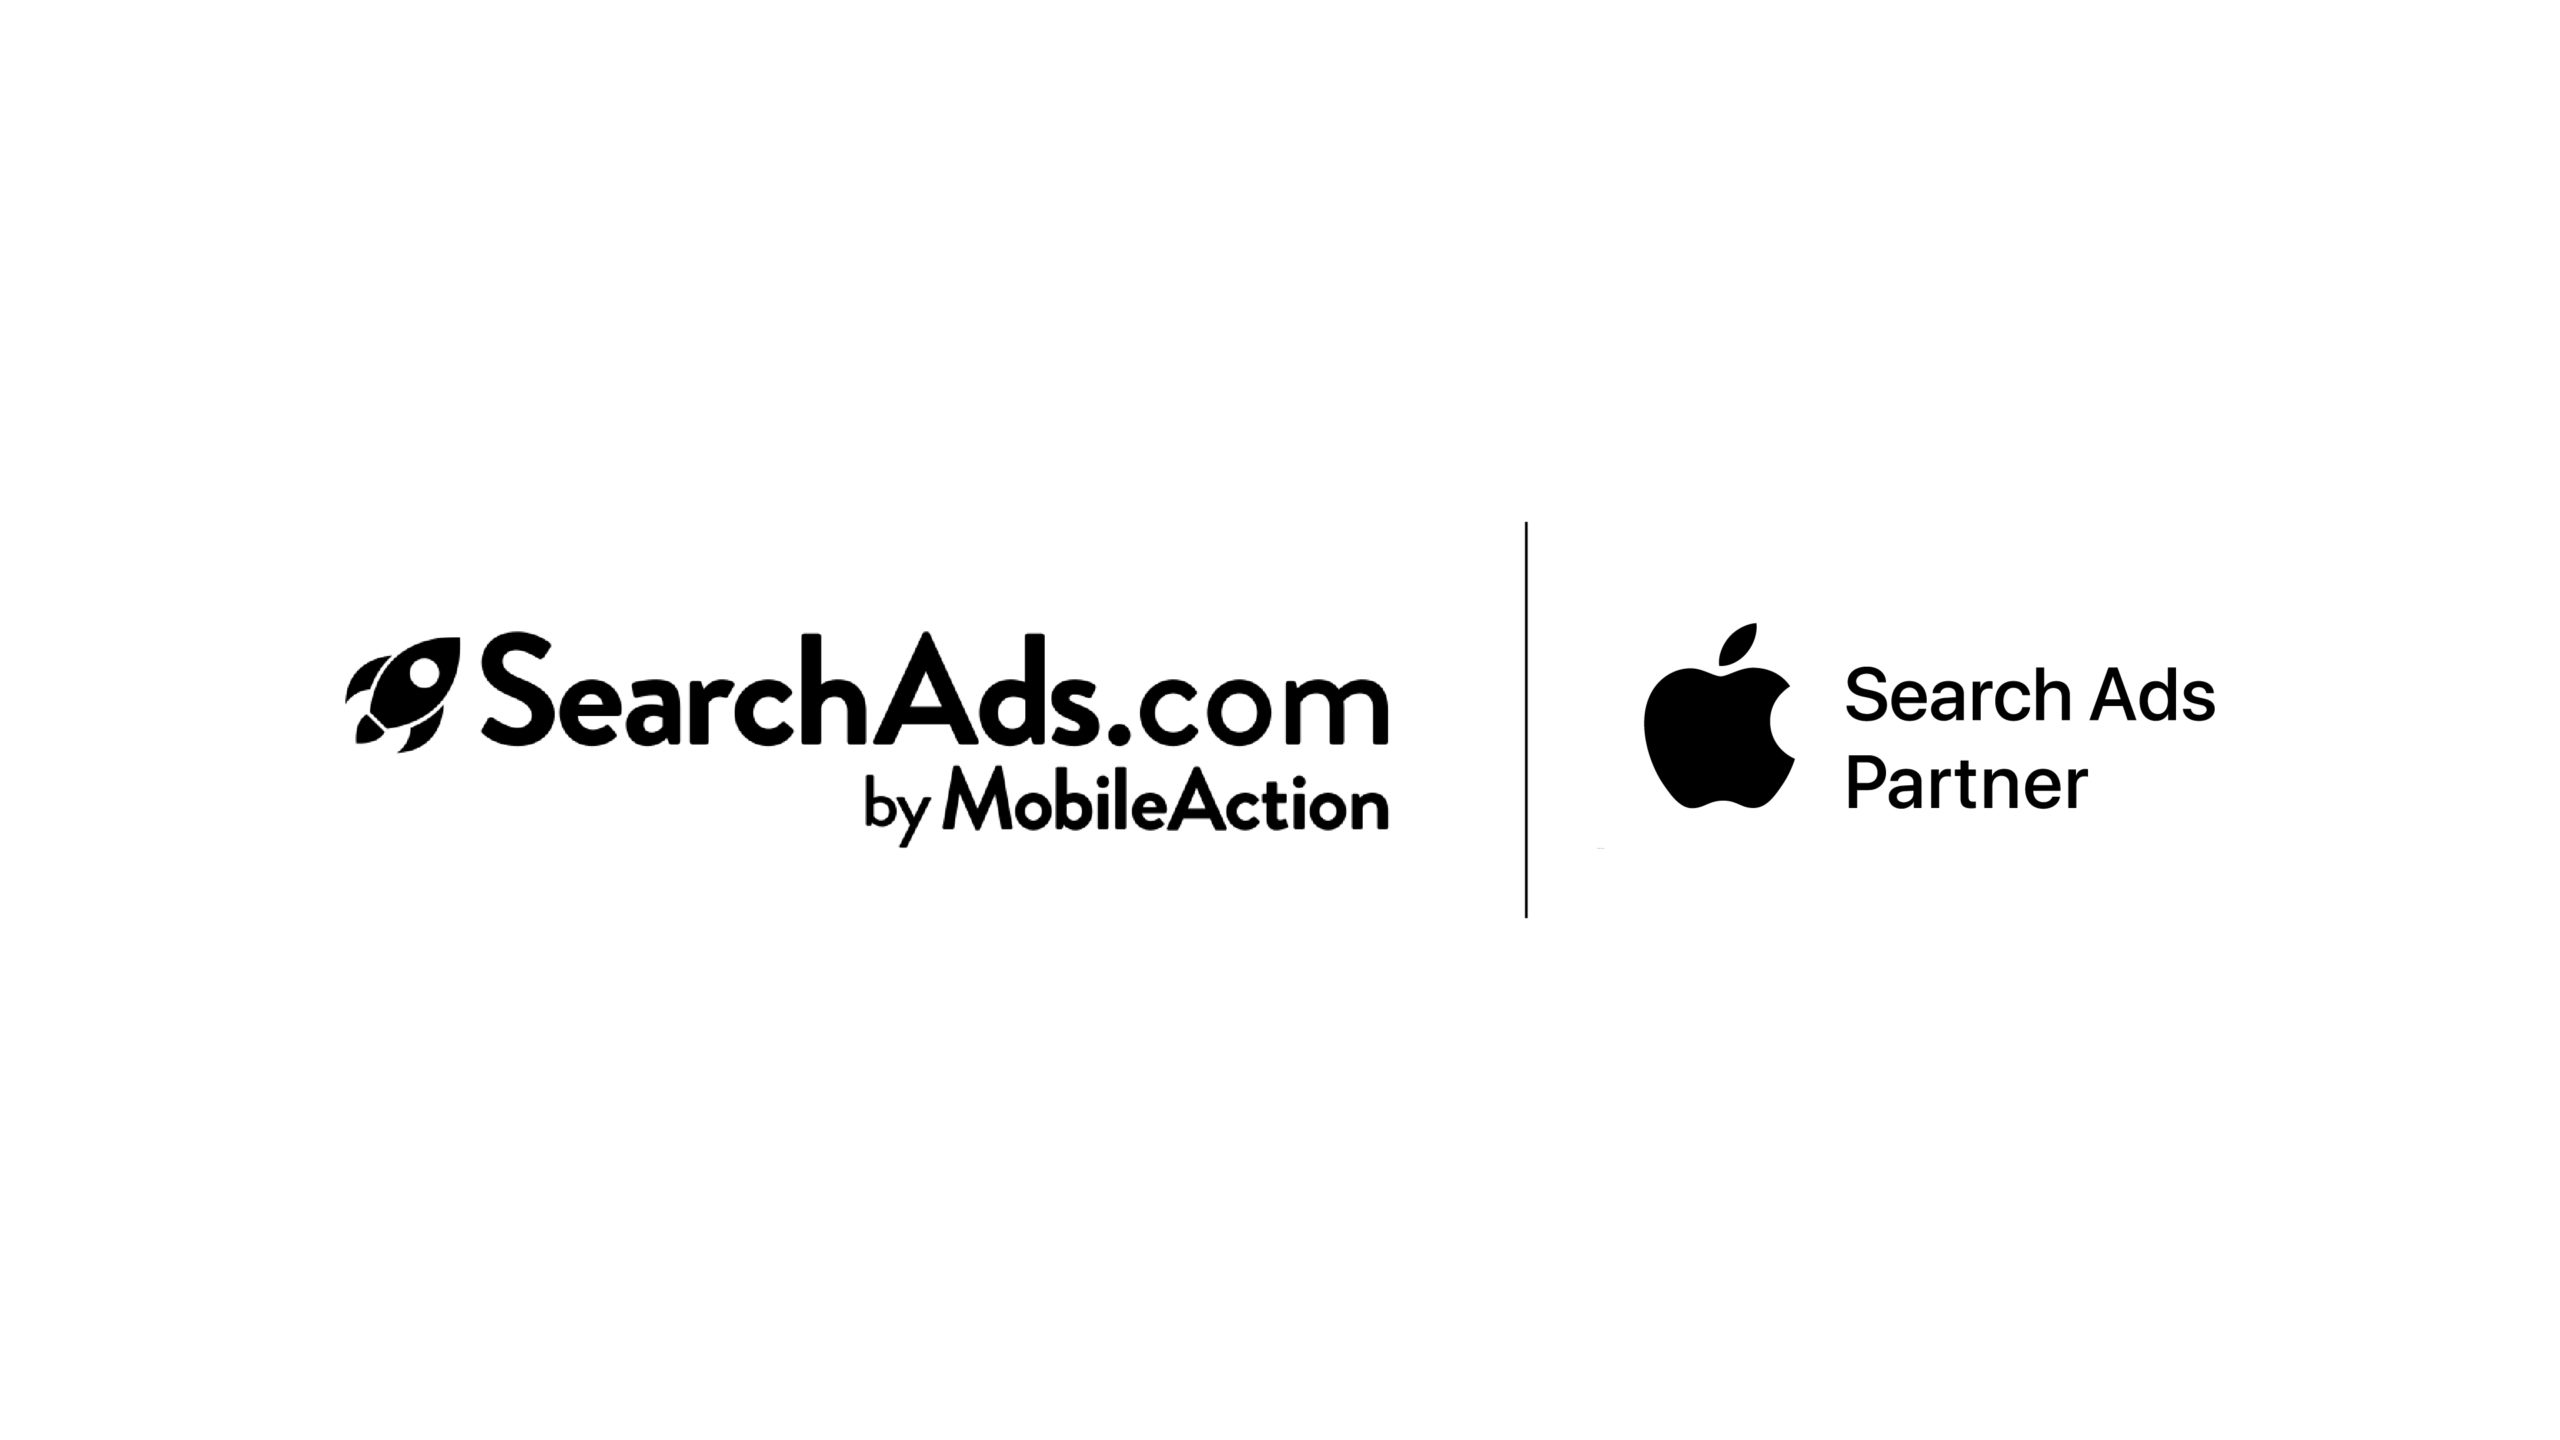 searchads.com apple search ads partner